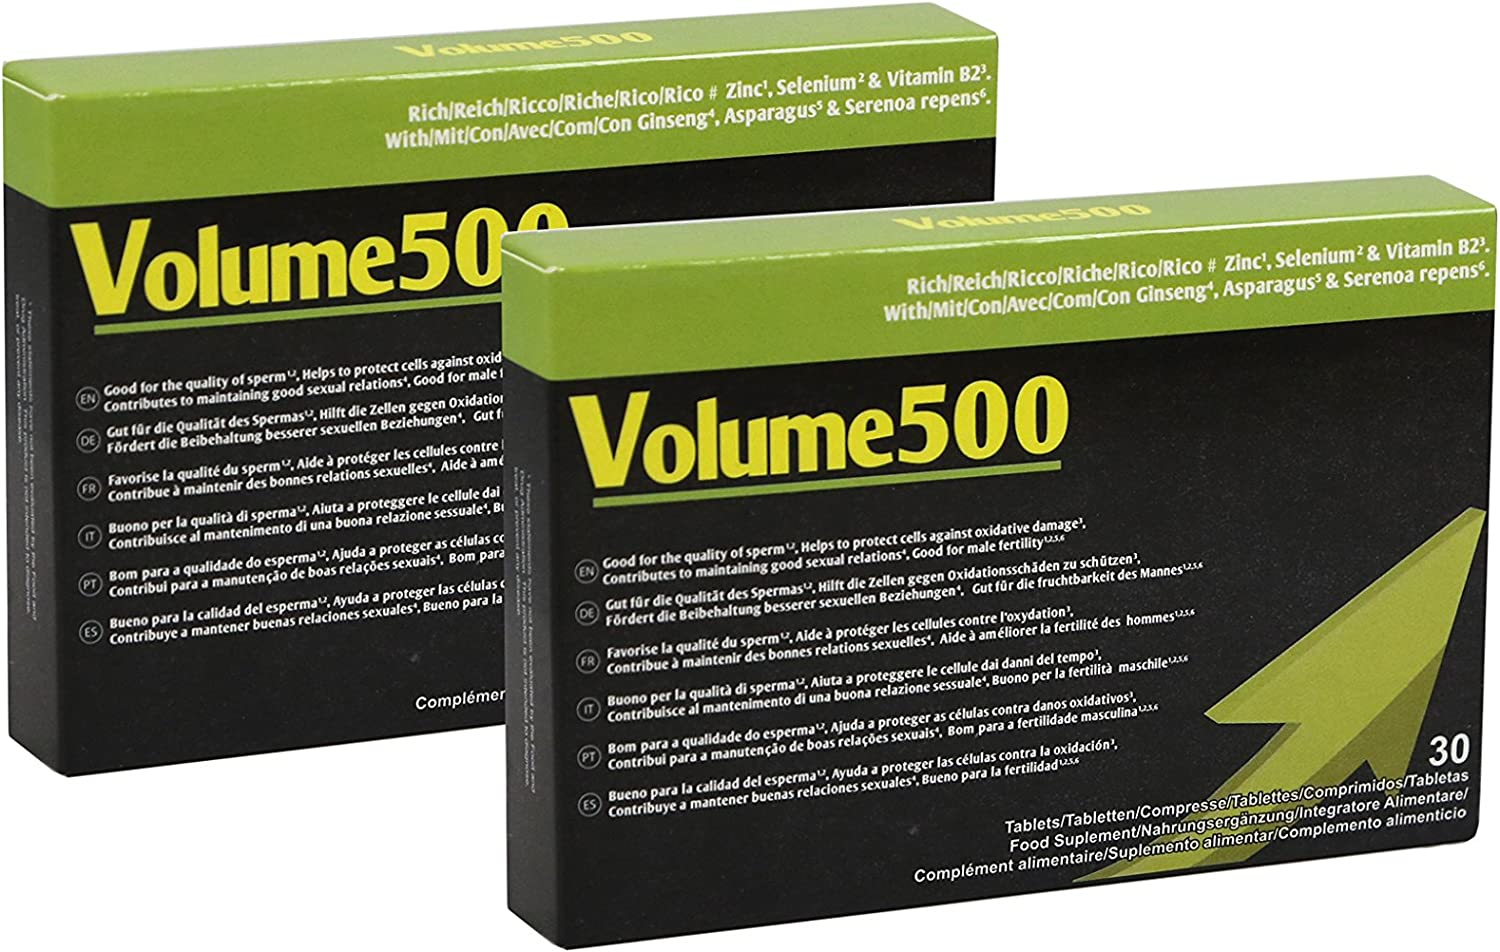 Volume500: Pills Max 66% OFF to Improve The Quality Quantity limited 2 Sperm of and Quantity